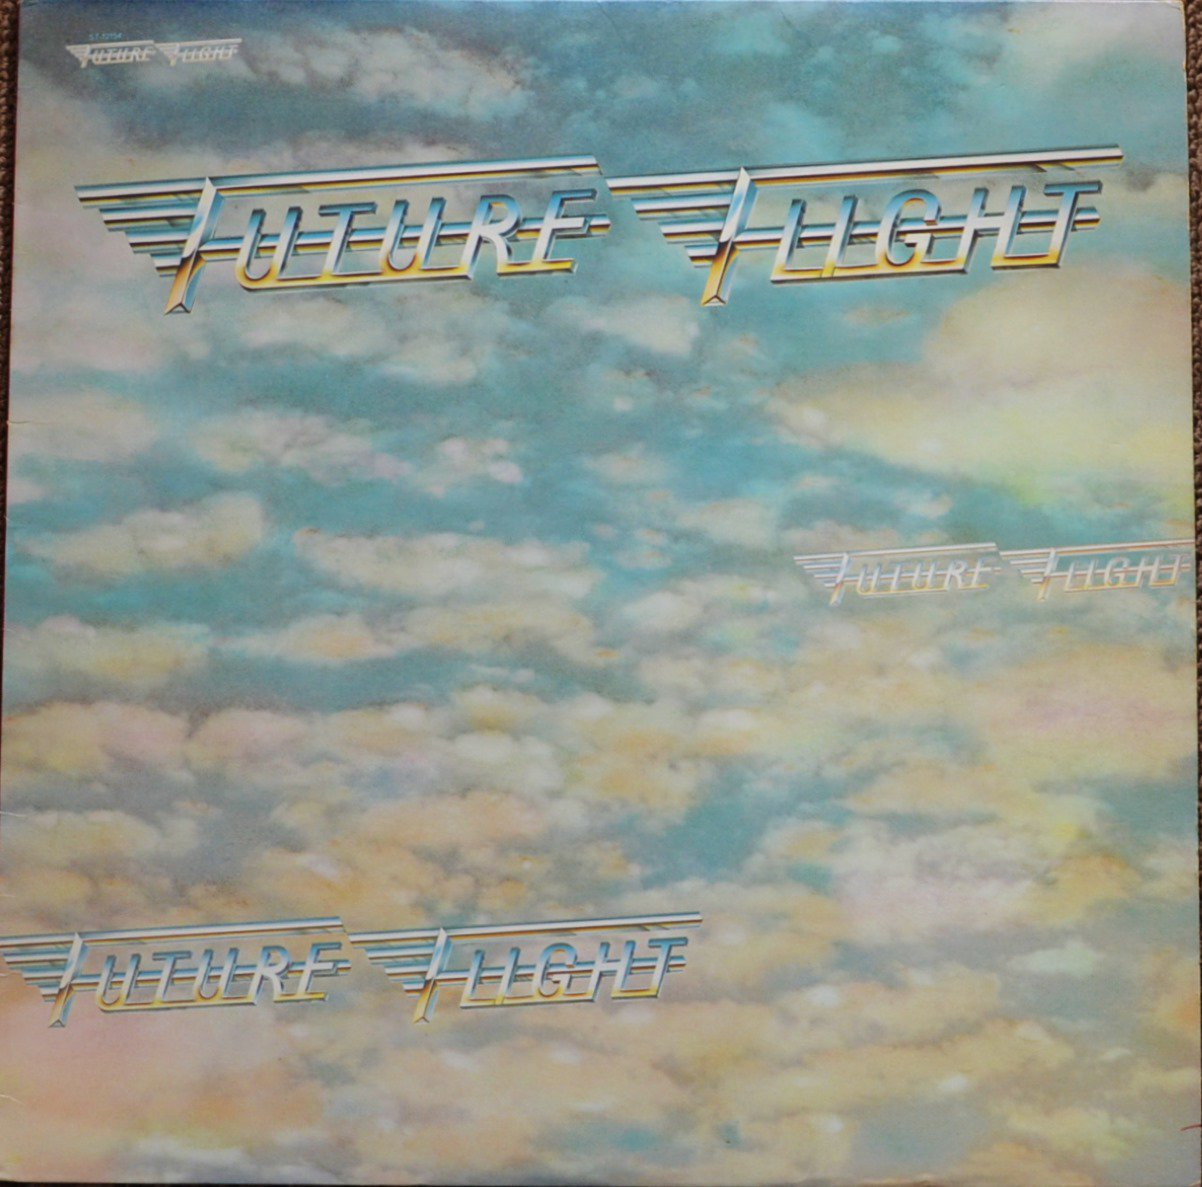 FUTURE FLIGHT / FUTURE FLIGHT (LP)